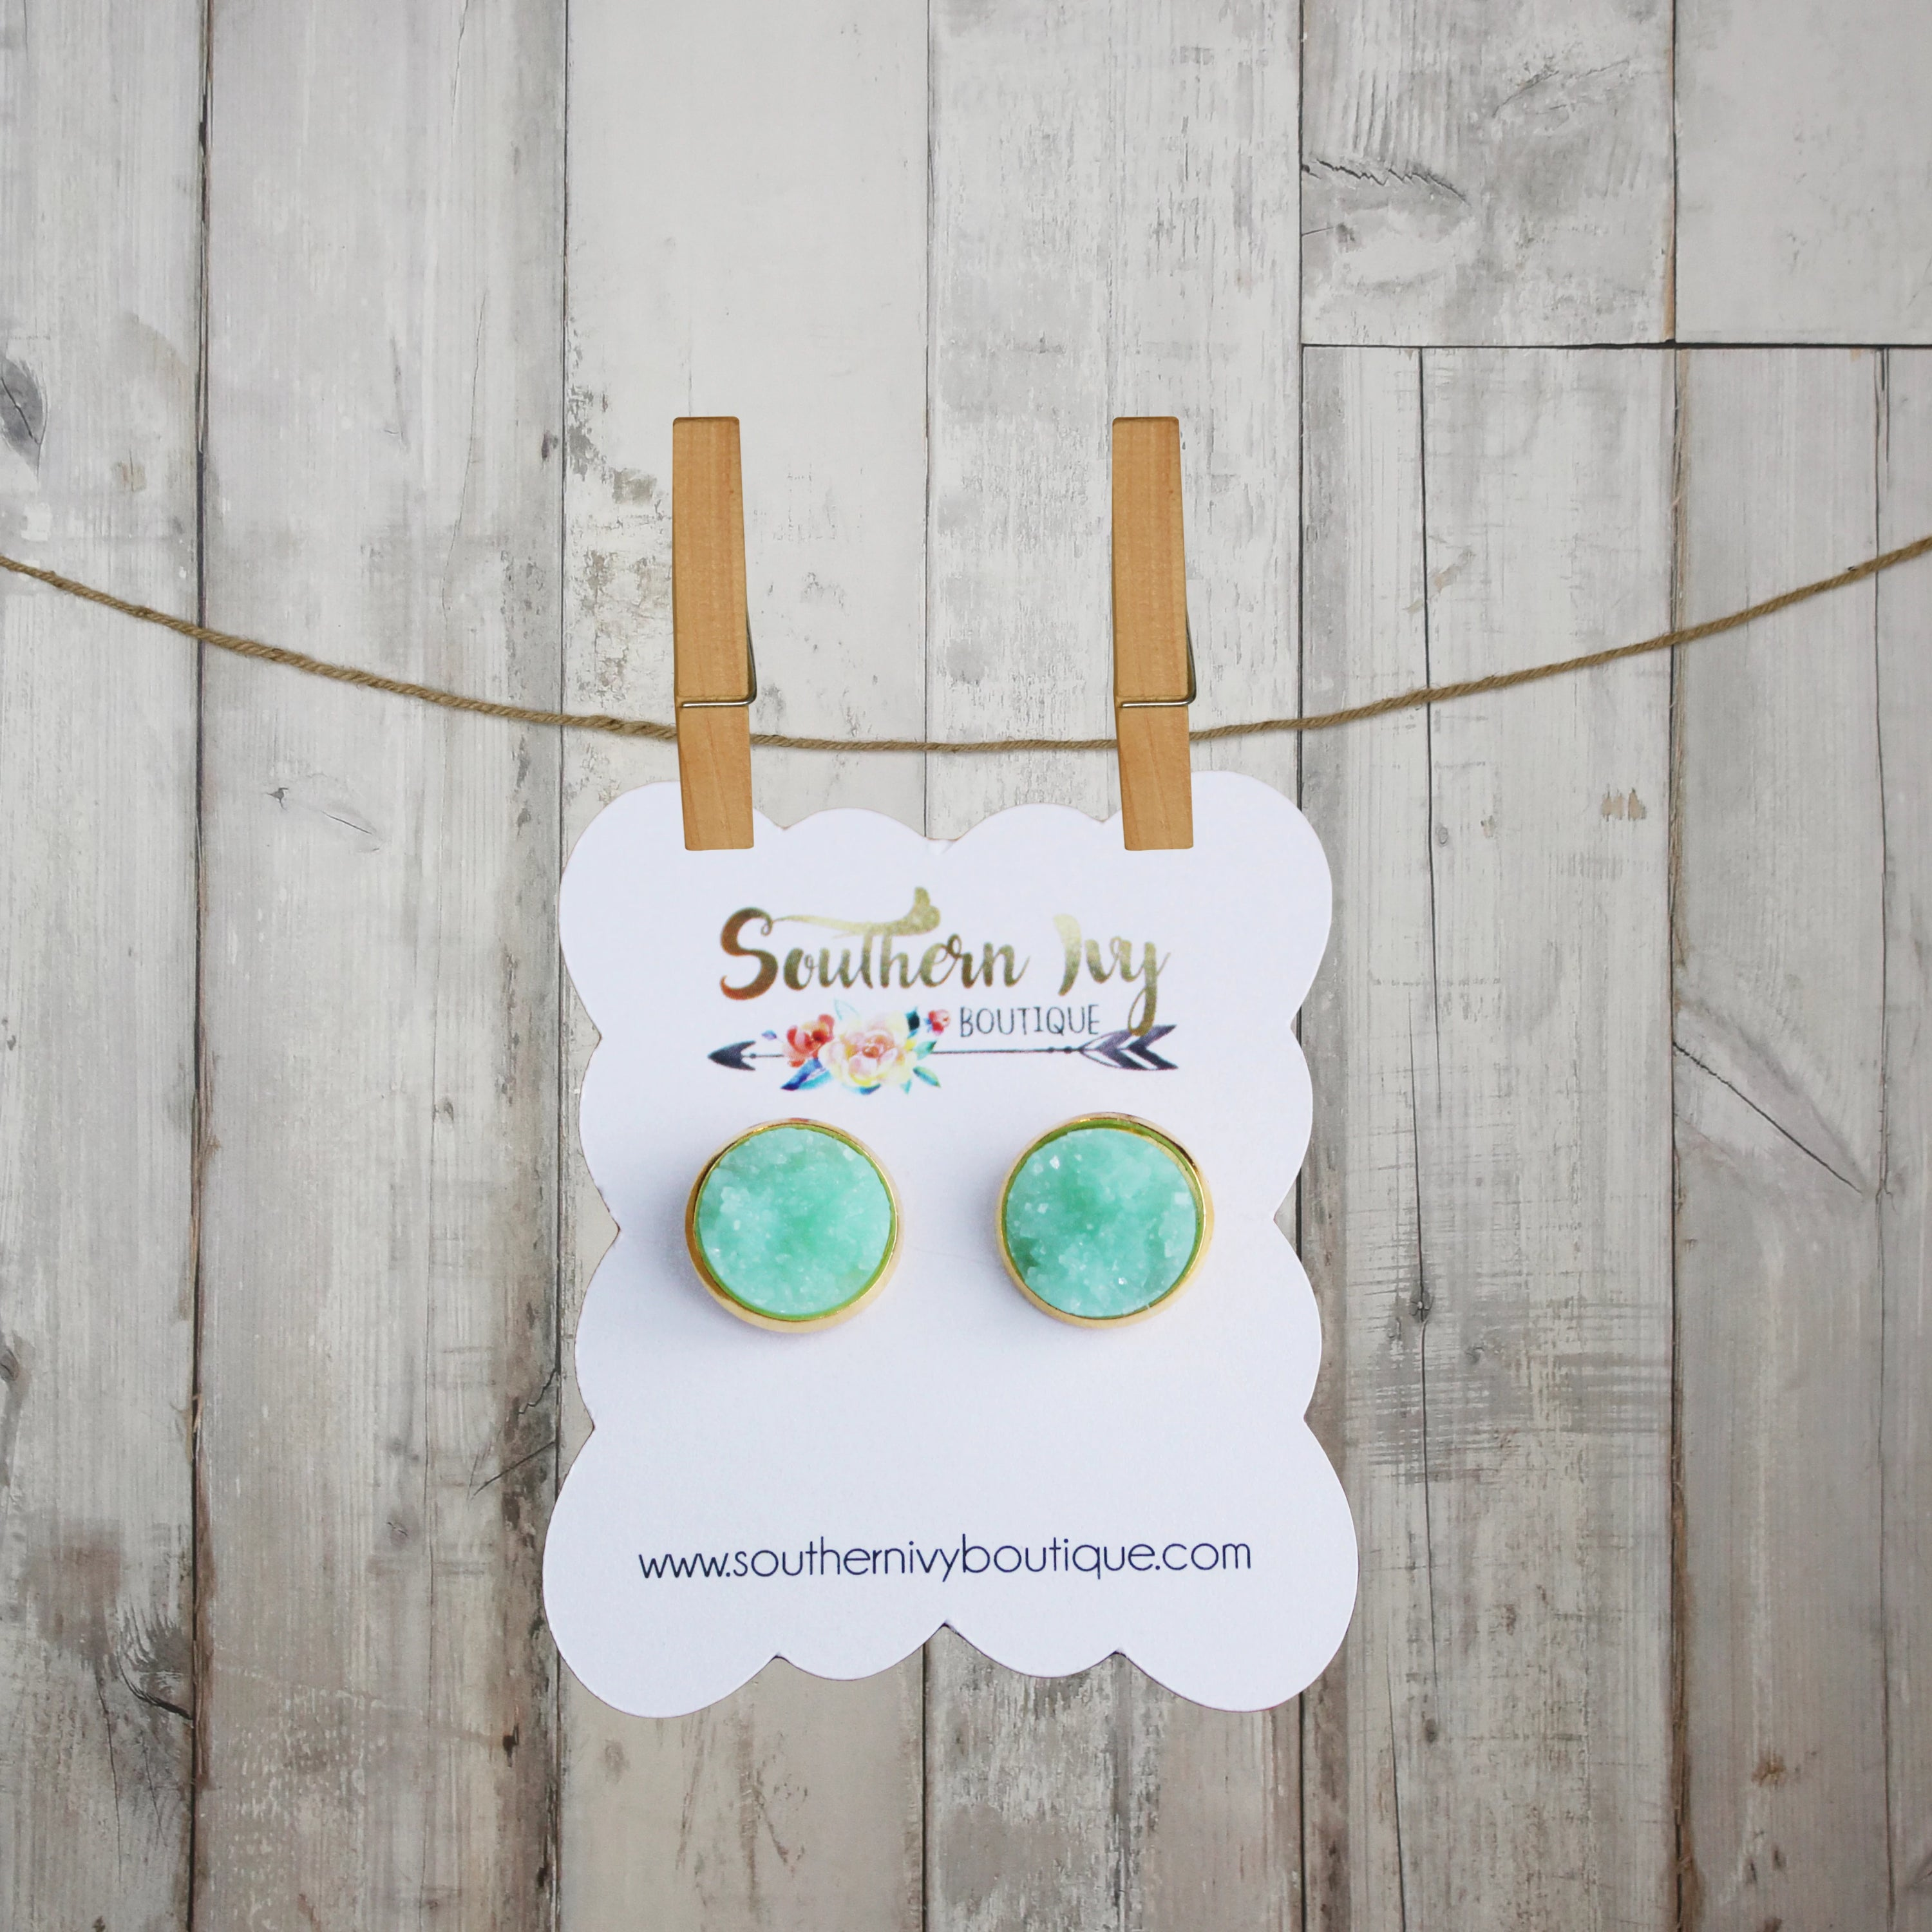 Mint & Gold Post Druzy Earring - Southern Ivy Boutique